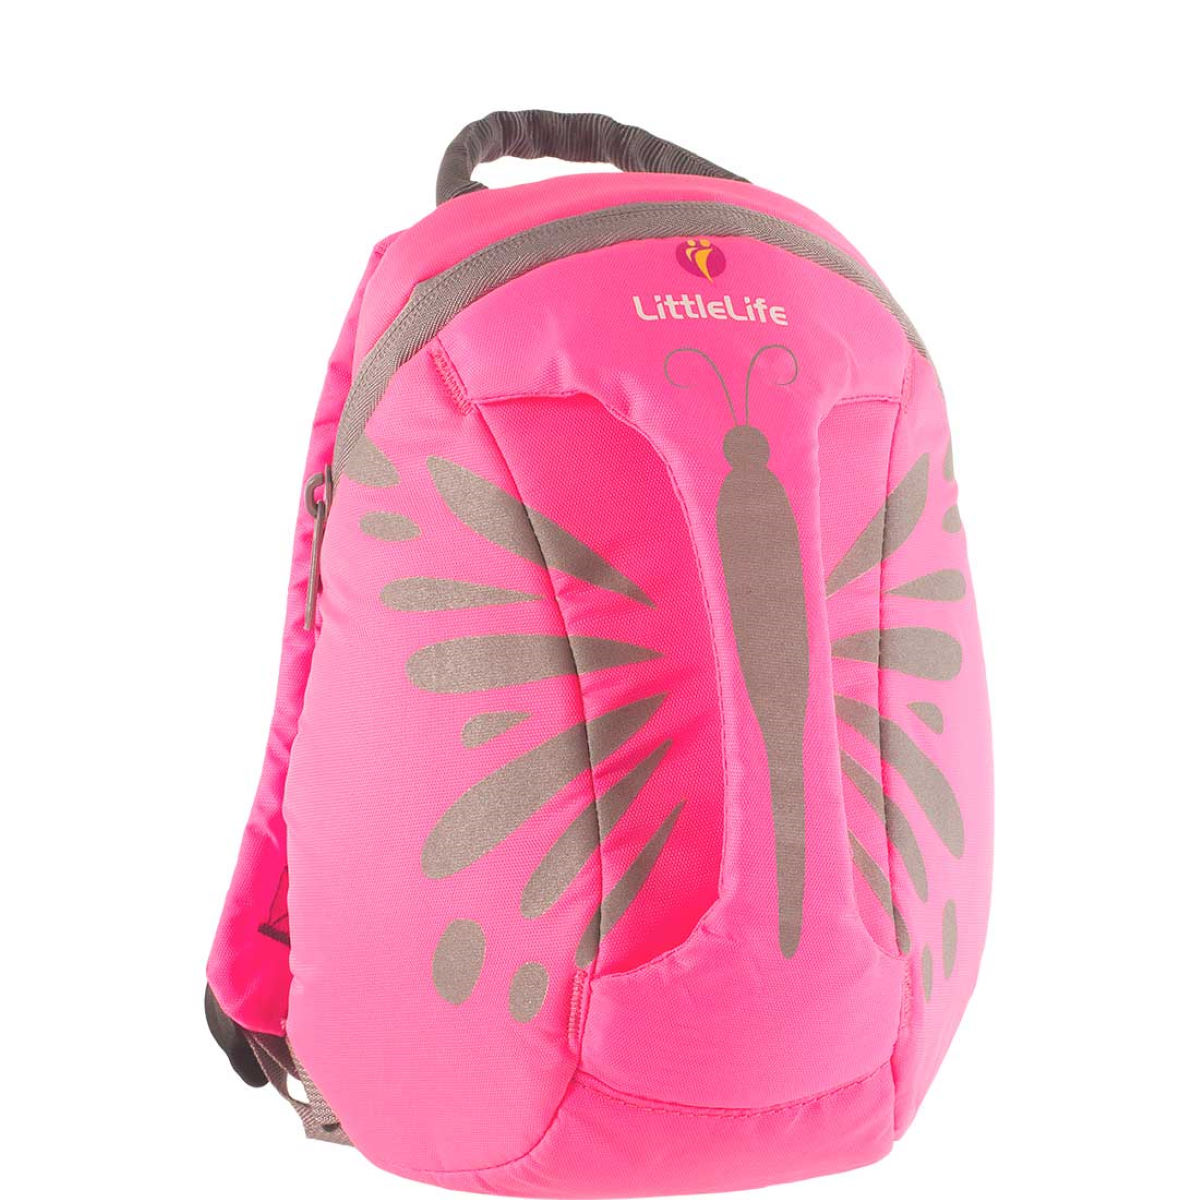 Sac à dos Enfant LittleLife Papillon (hautement visible) - Hi-Vis Pink